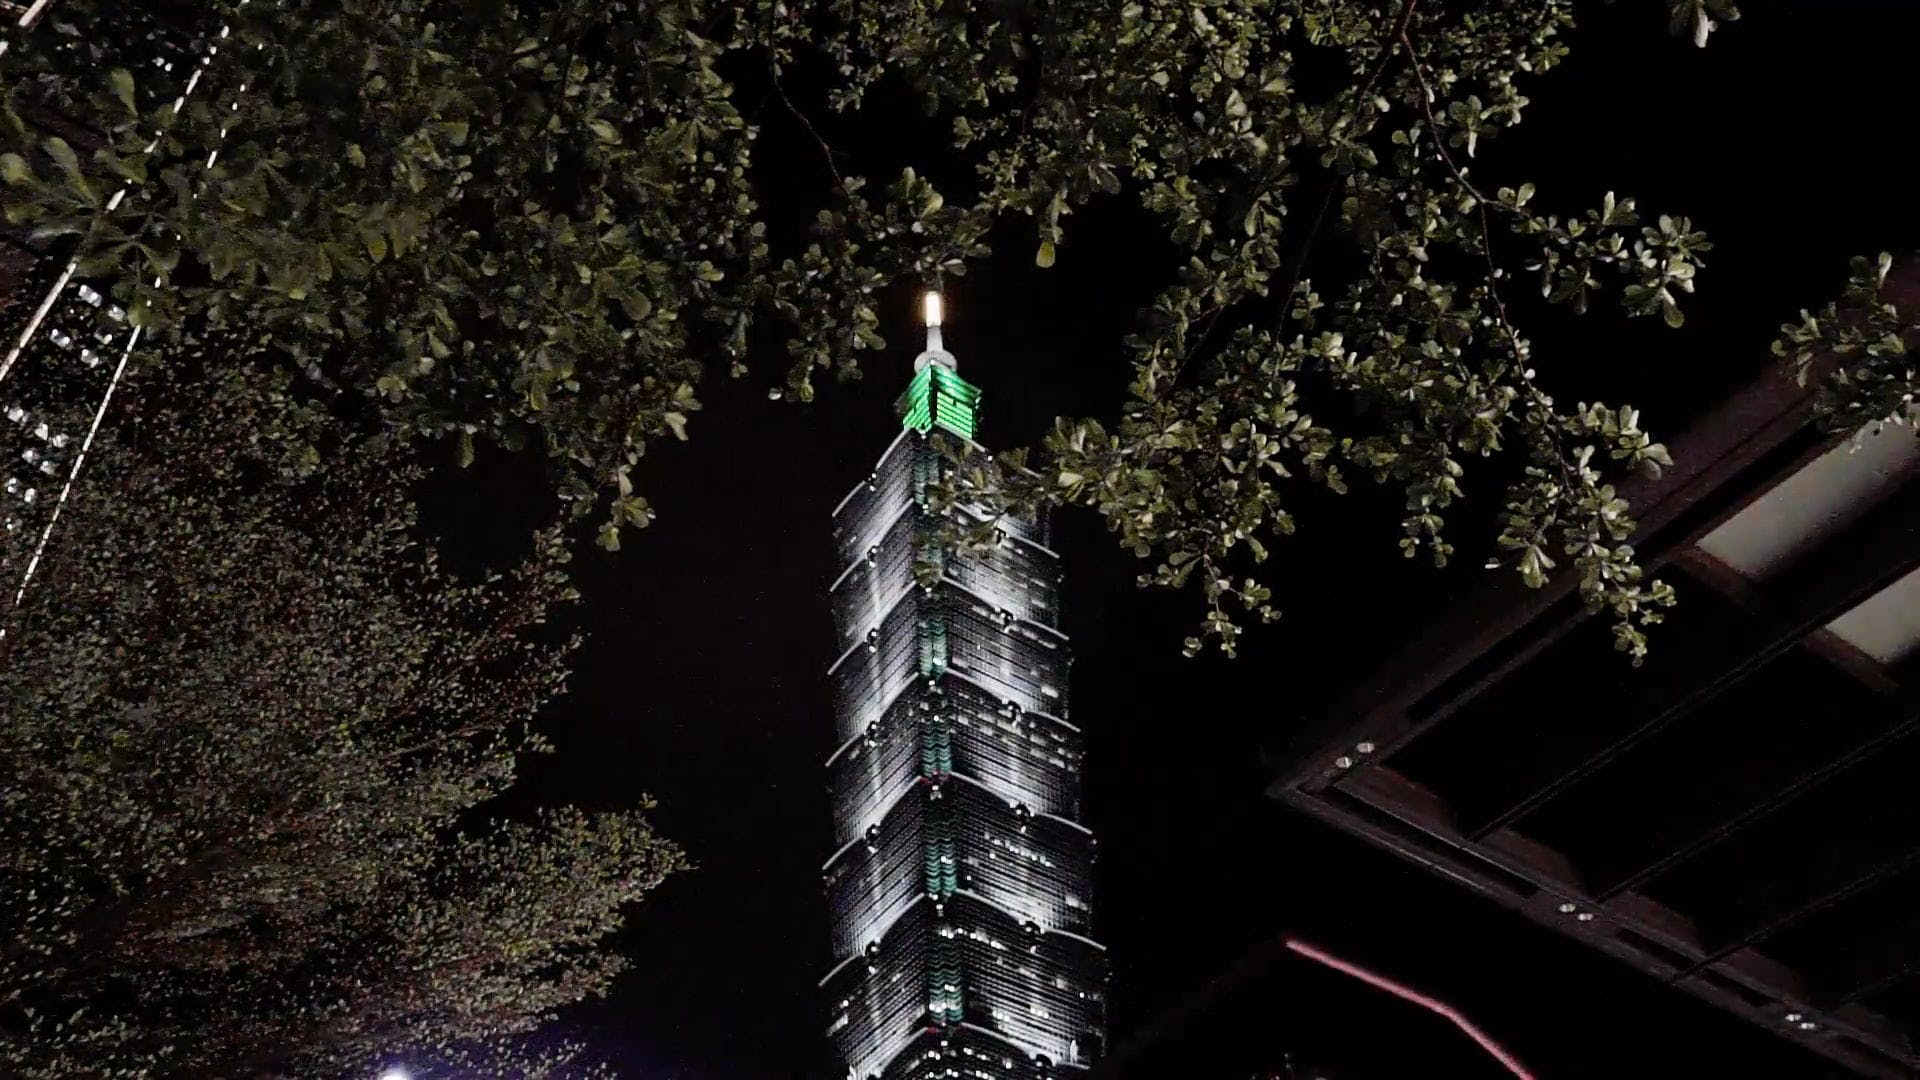 Low Angle Shot Of An Illuminated Tower